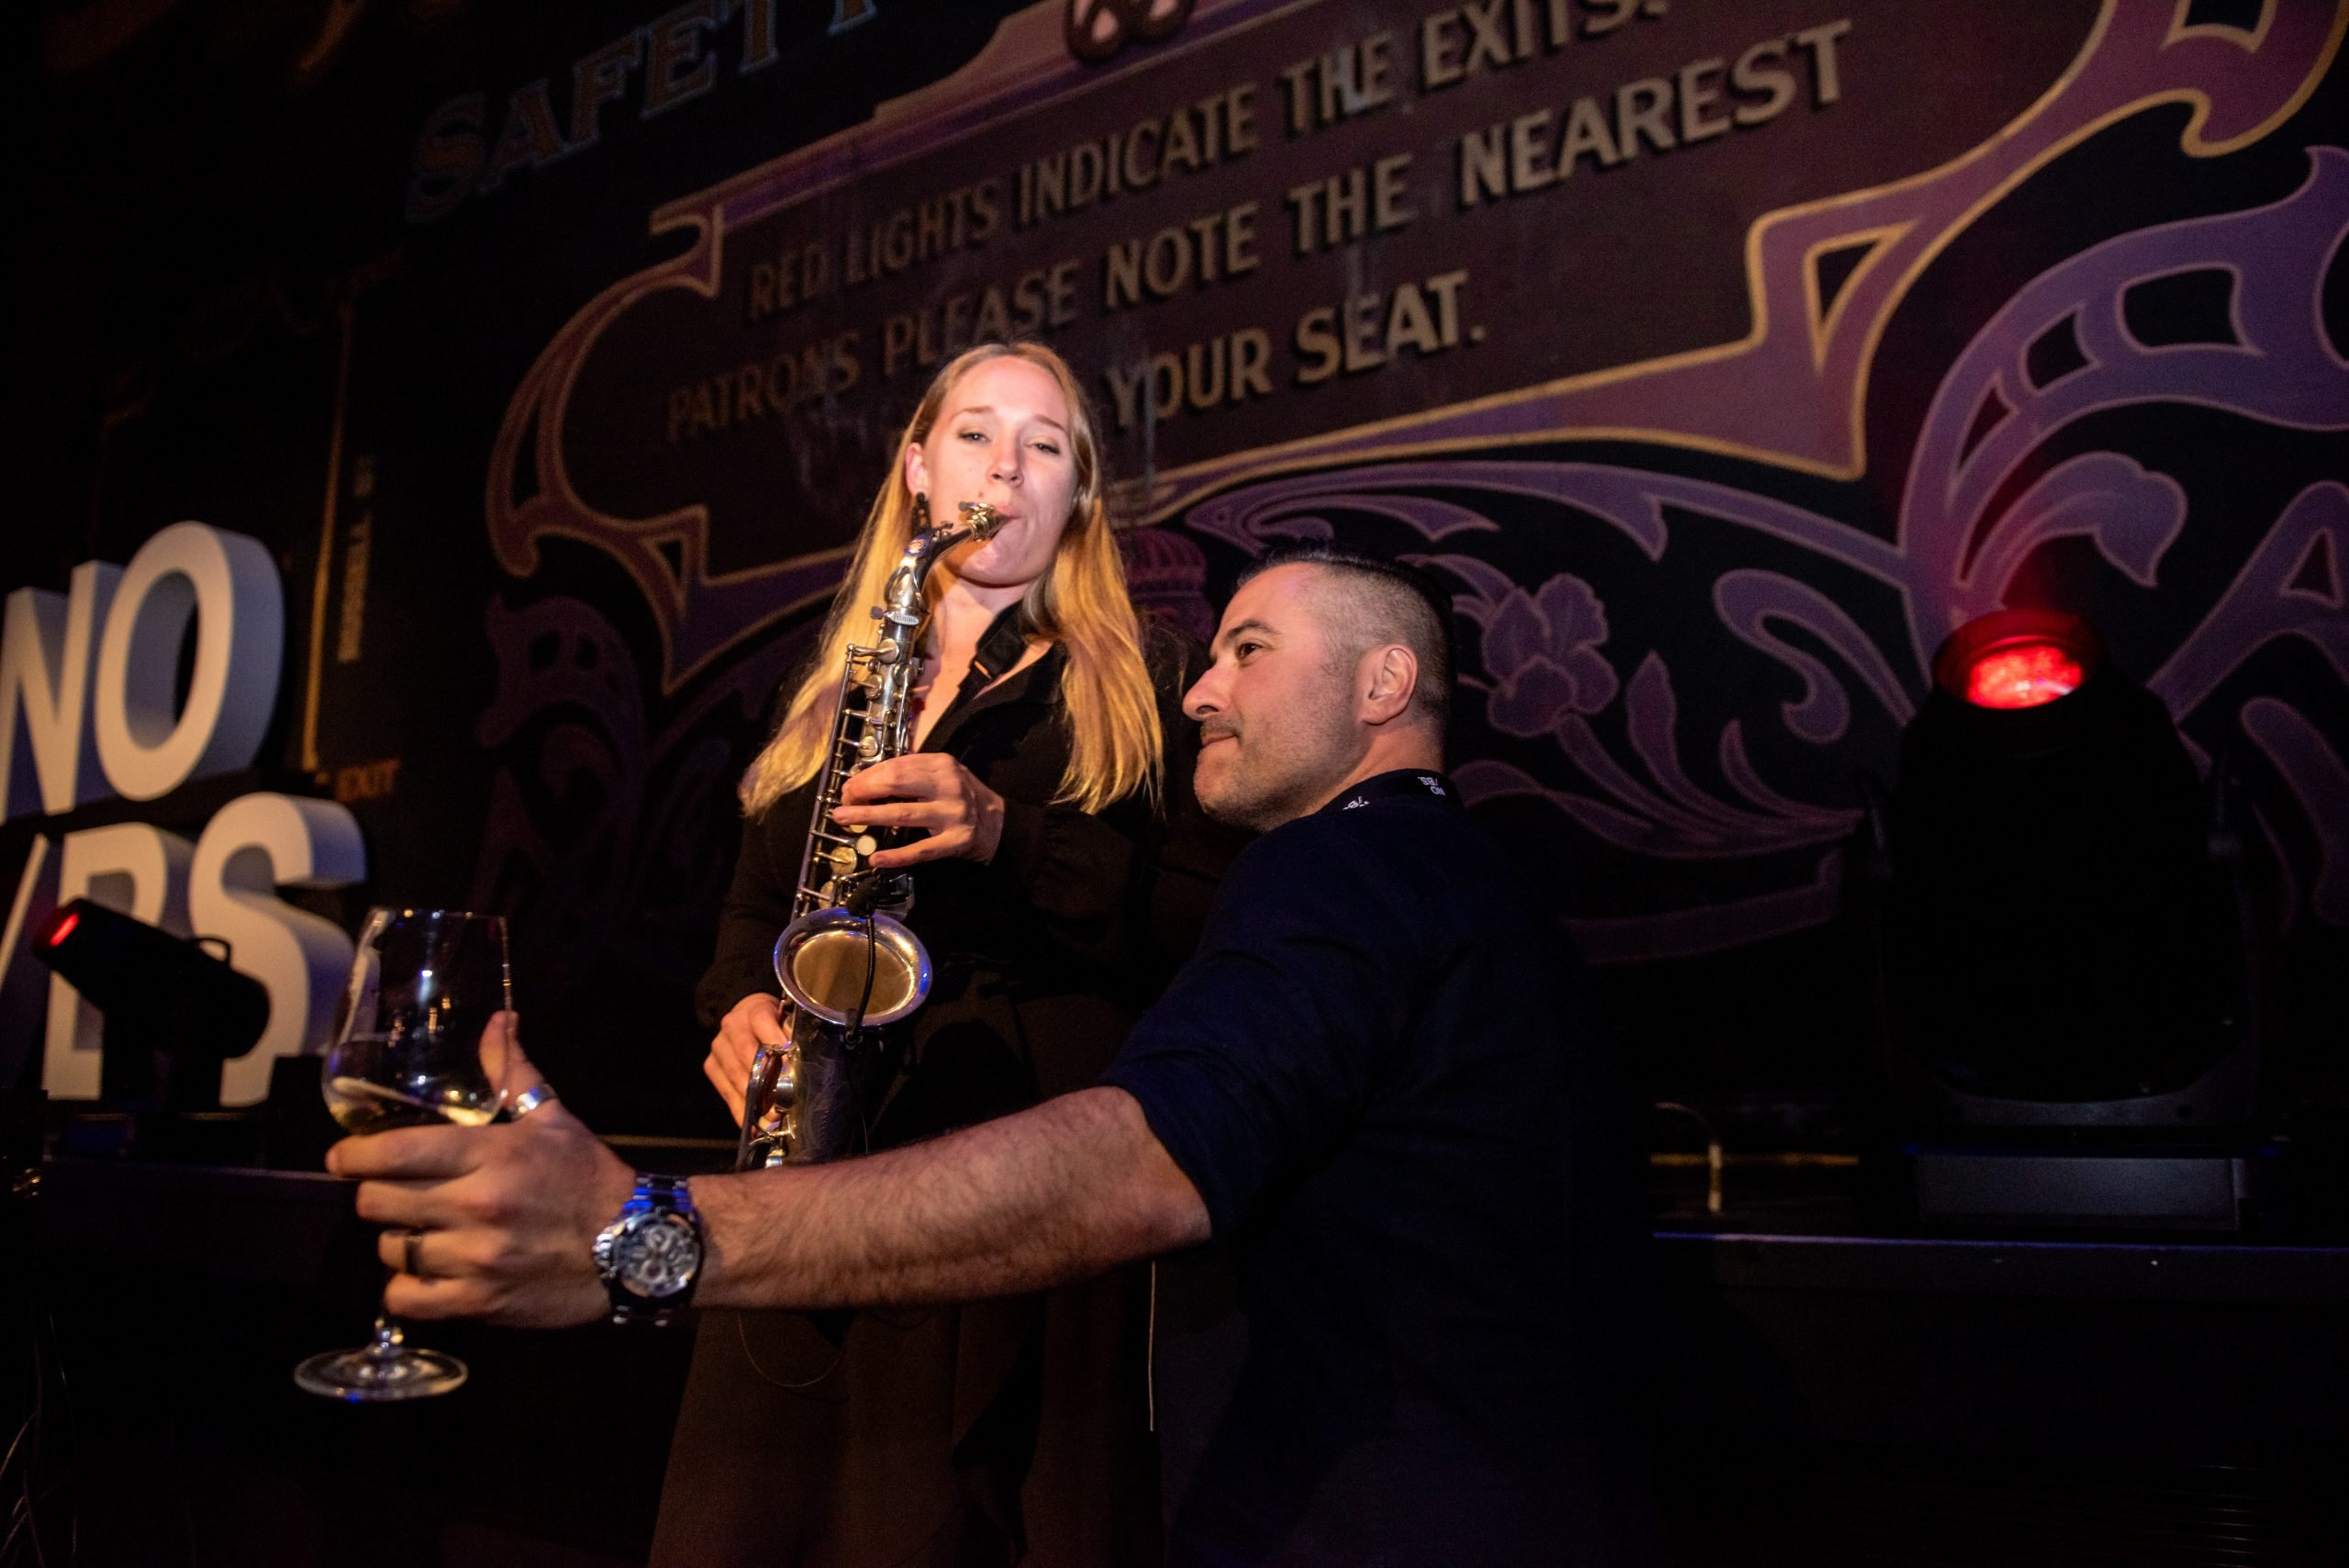 Female Sax Player With Guest With Wine In His Hand At Melbourne Conference Event